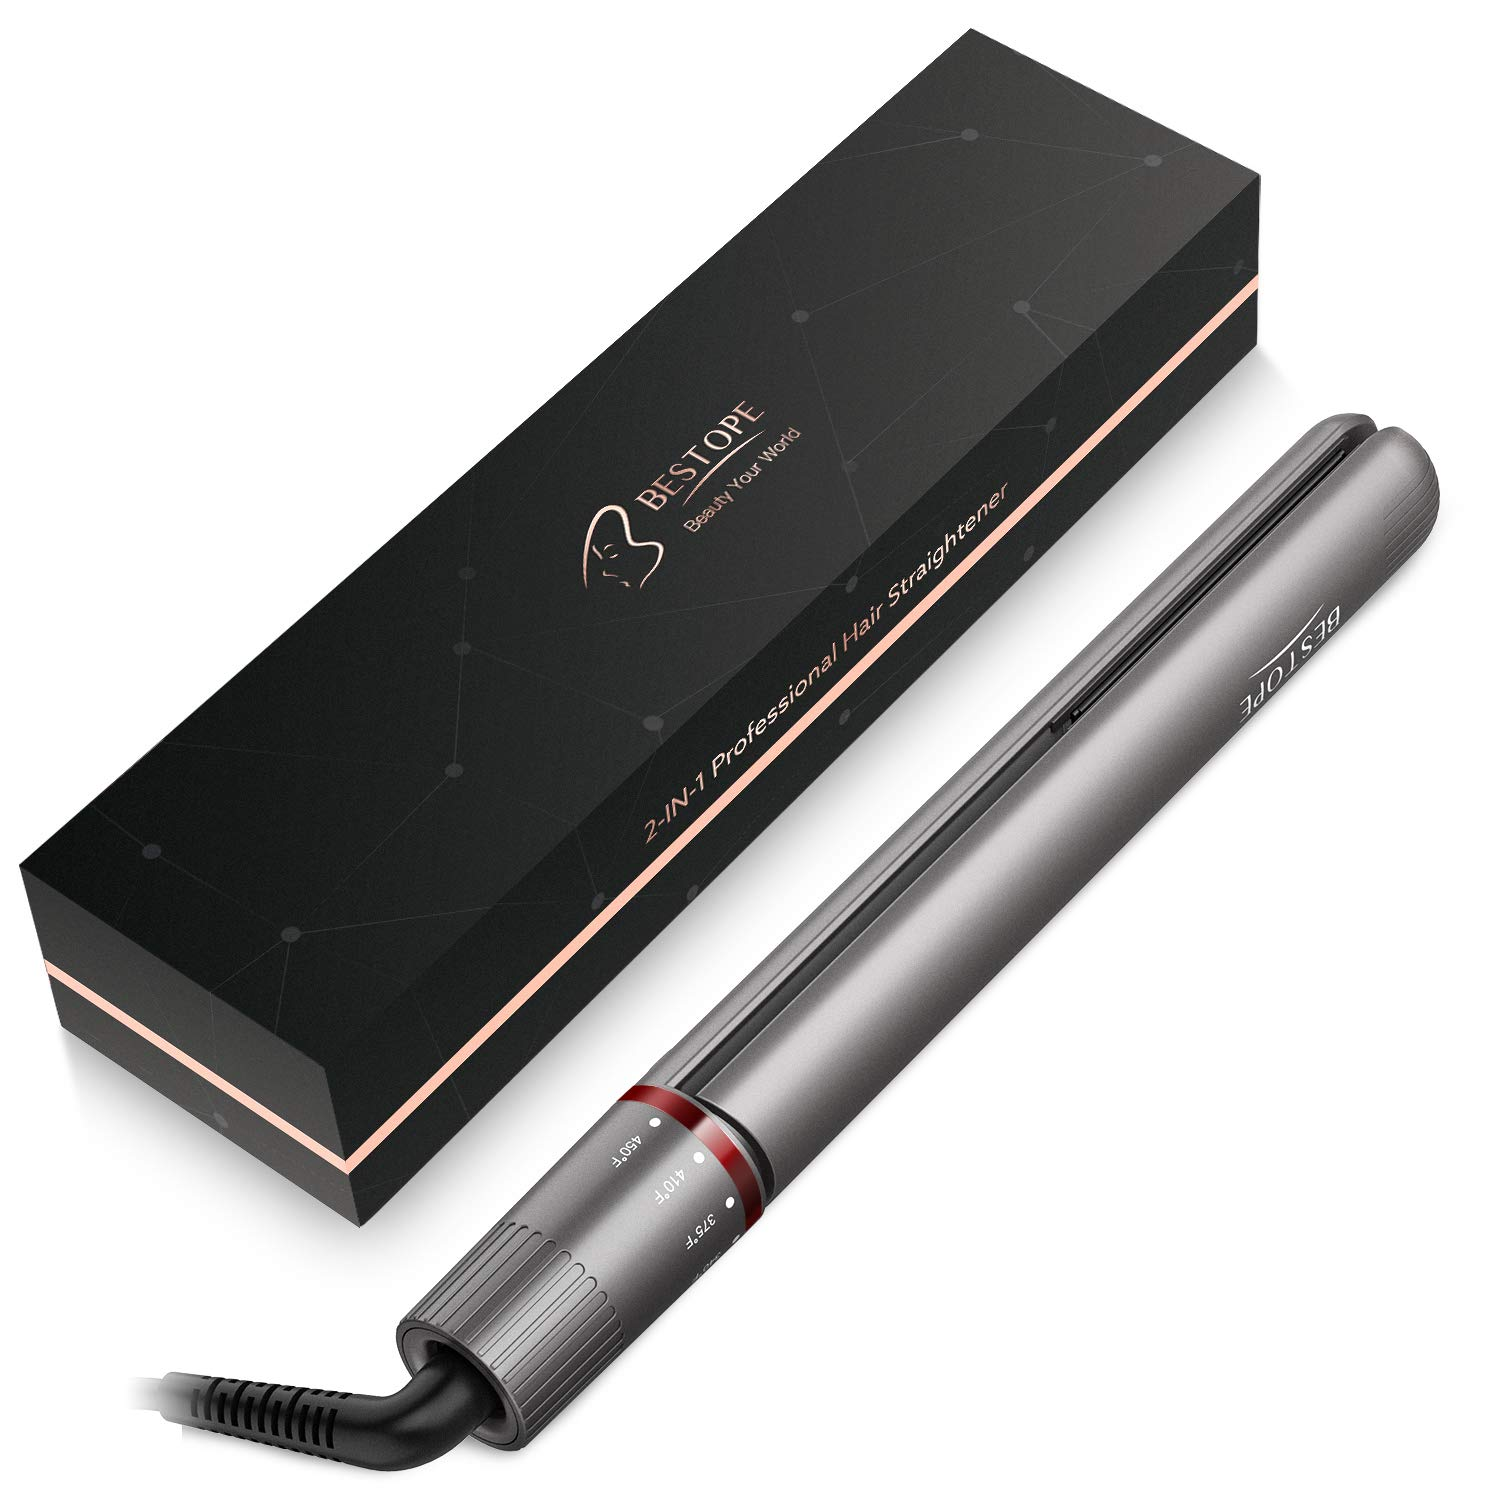 BESTOPE Upgraded Hair Straightener and Curler, 2 In 1 Ceramic Flat Iron for Hair with 15s Heating, 1 Inch Curling Iron Wand Set with Clips and Gloves